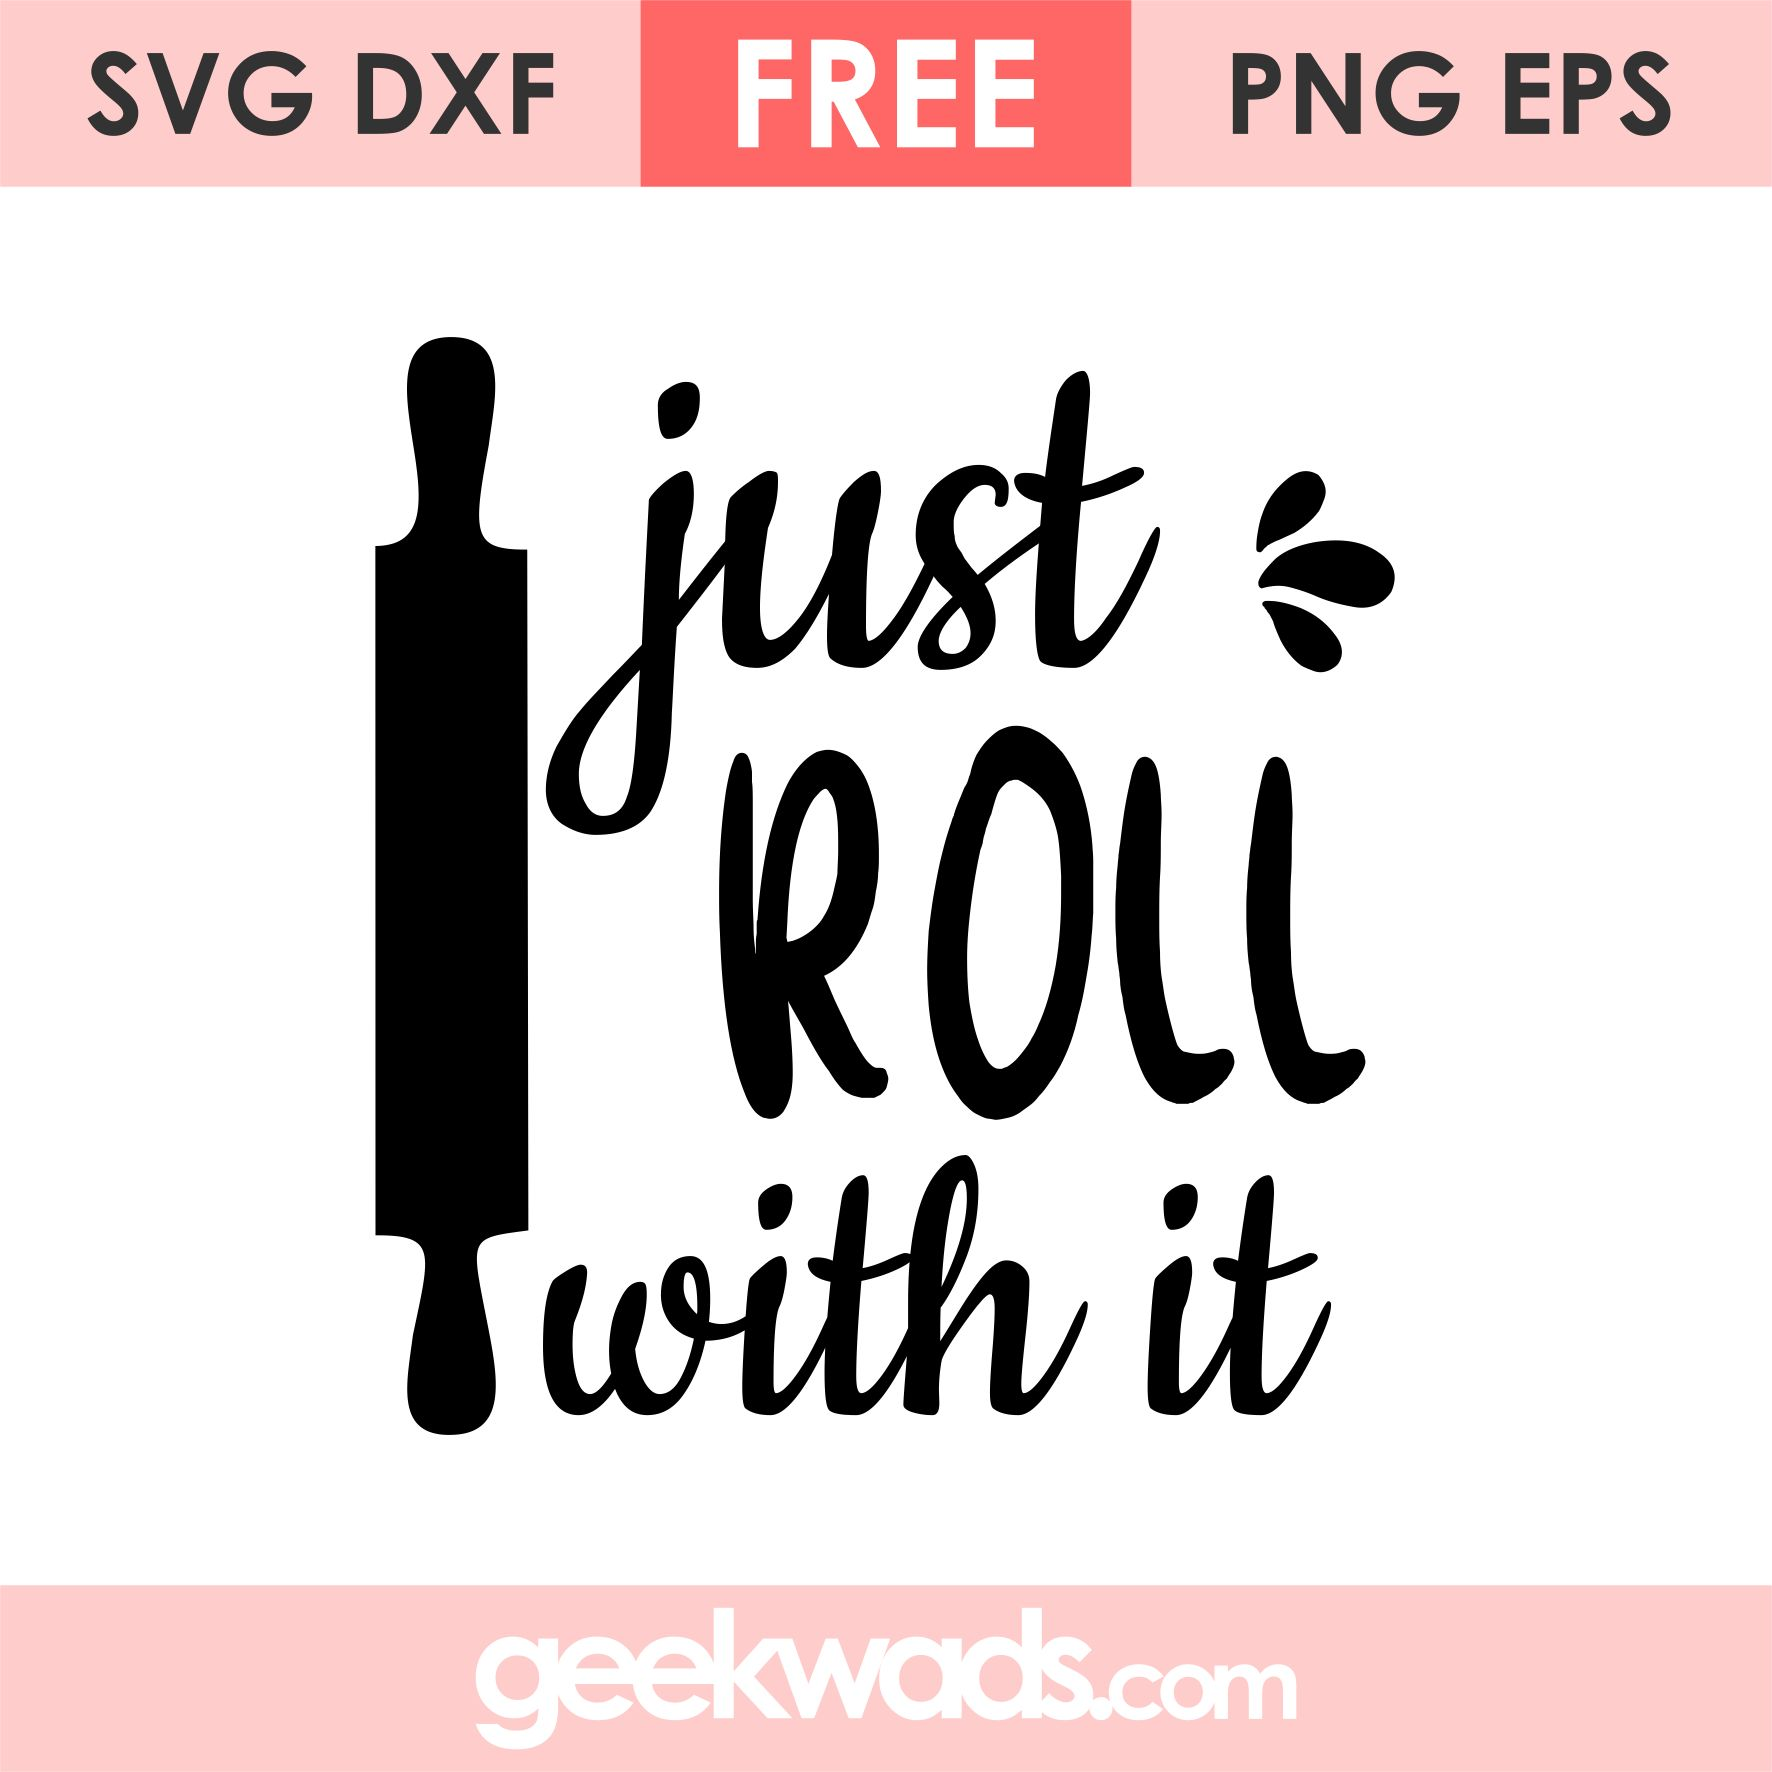 Just Roll With It svg